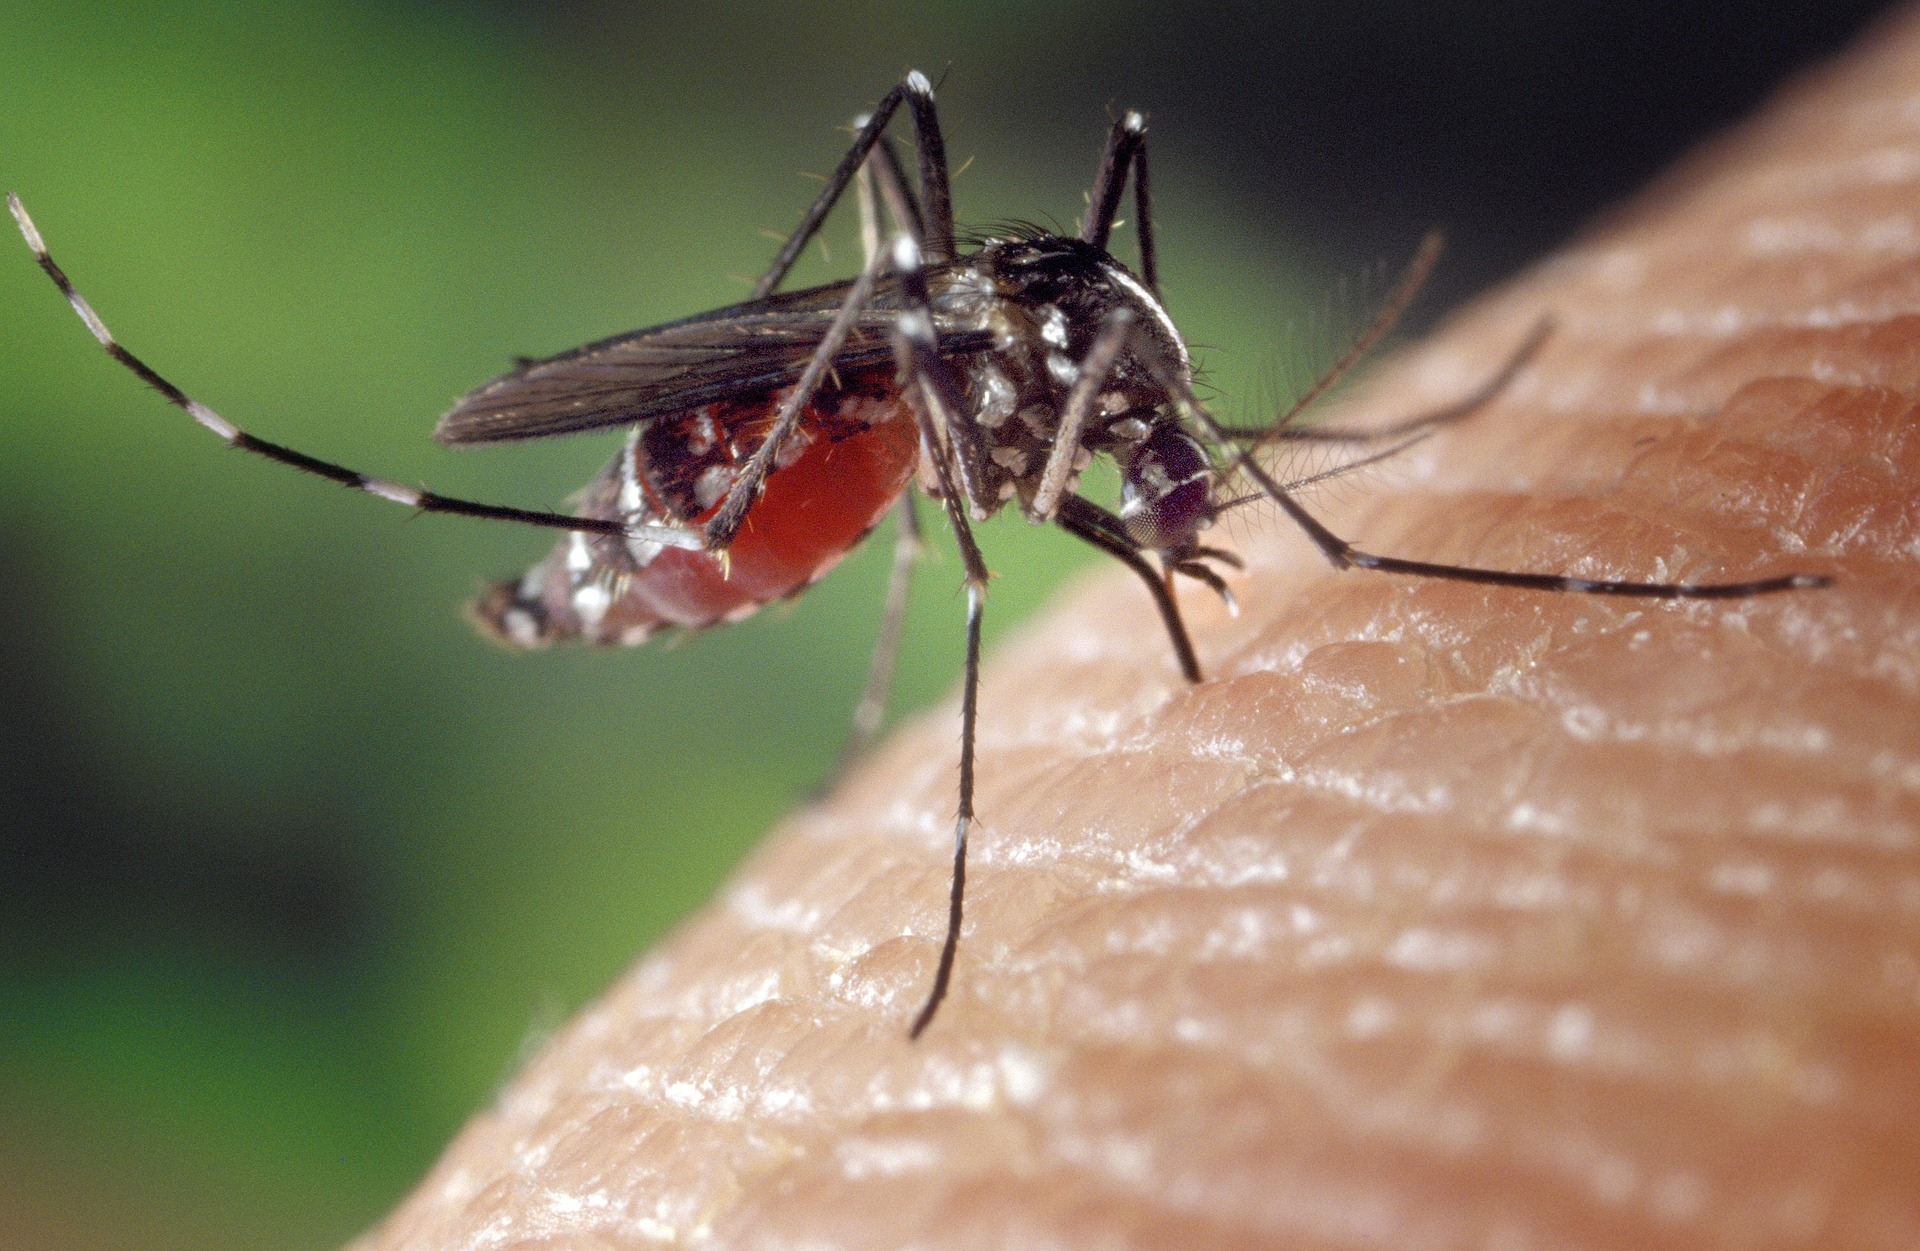 A mosquito on human skin